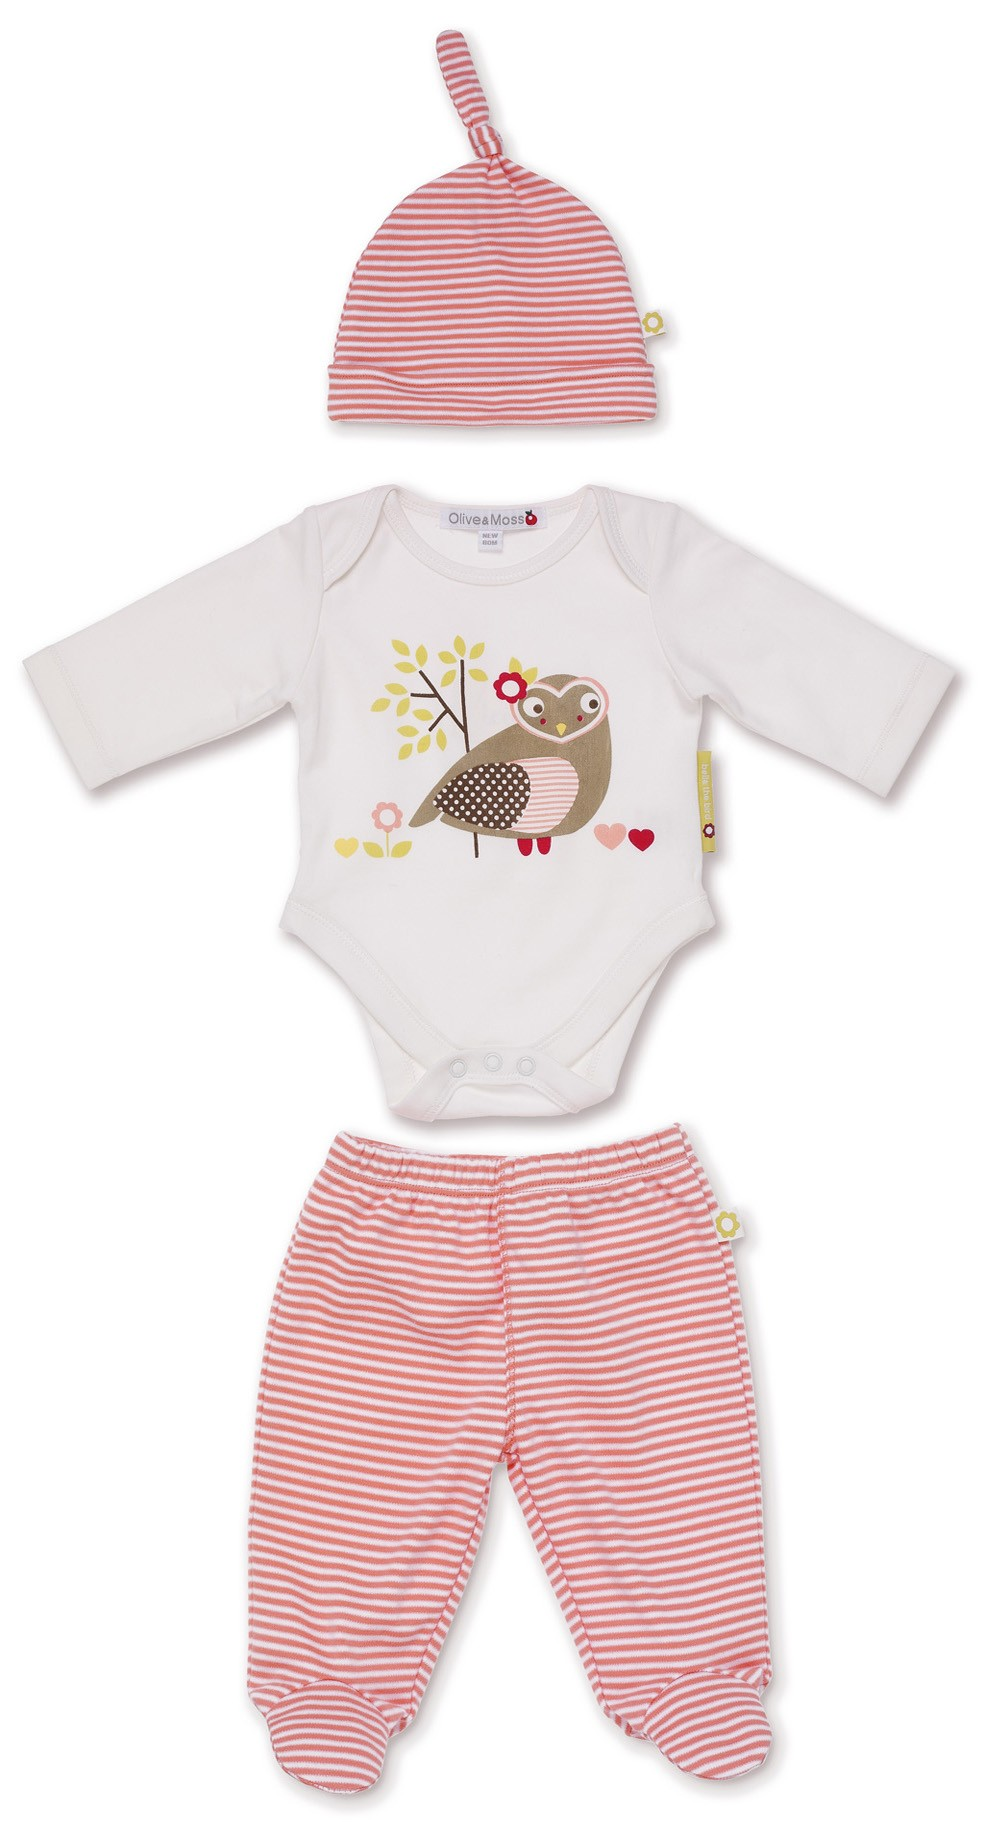 bella-the-bird-newborn-gift-set